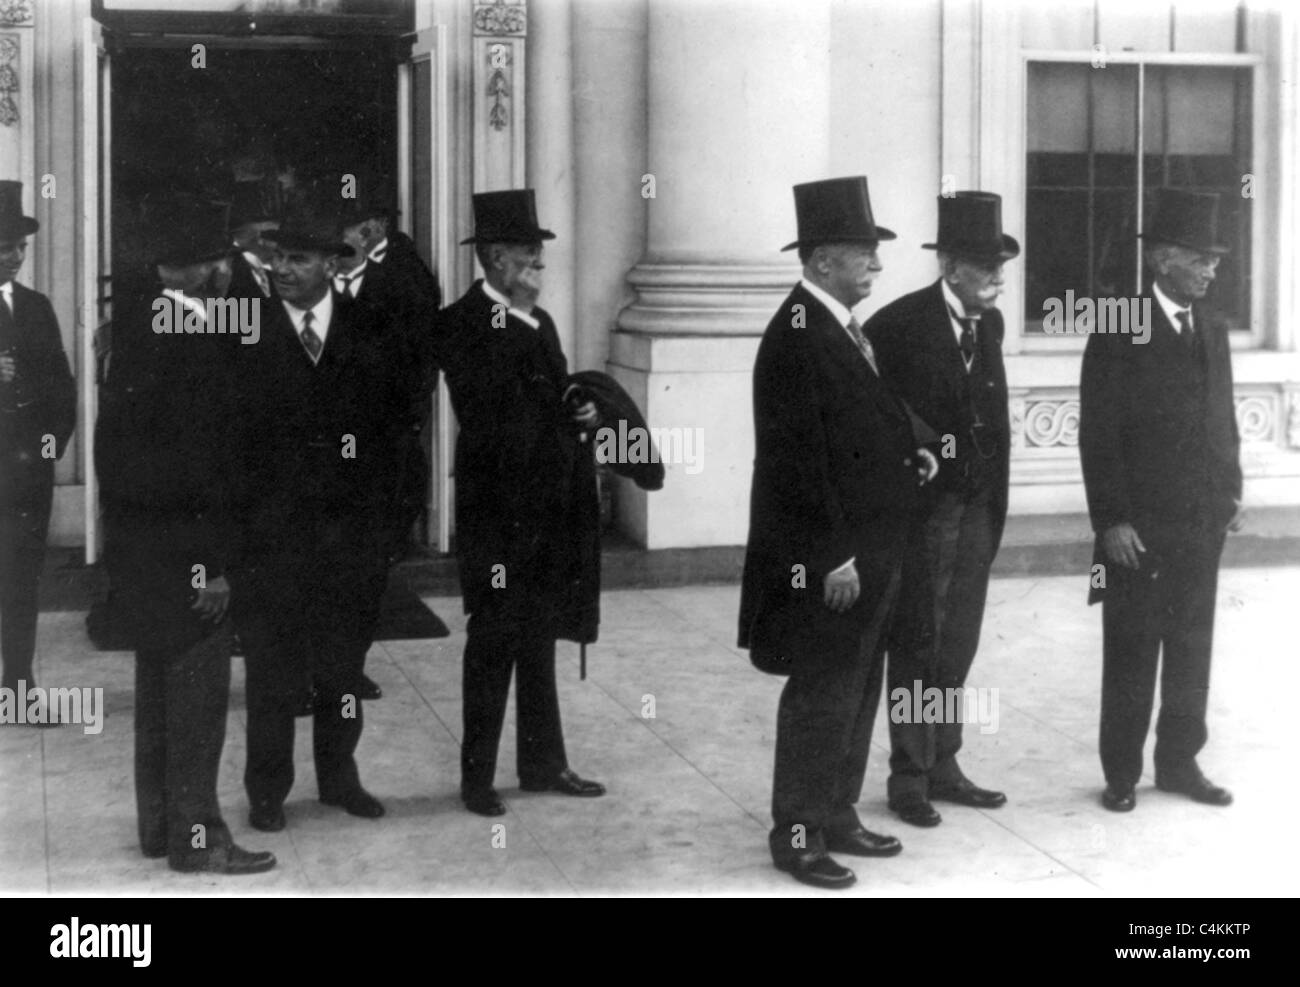 Members of the U.S. Supreme Court leaving the White House after calling on the President prior to the opening of Stock Photo